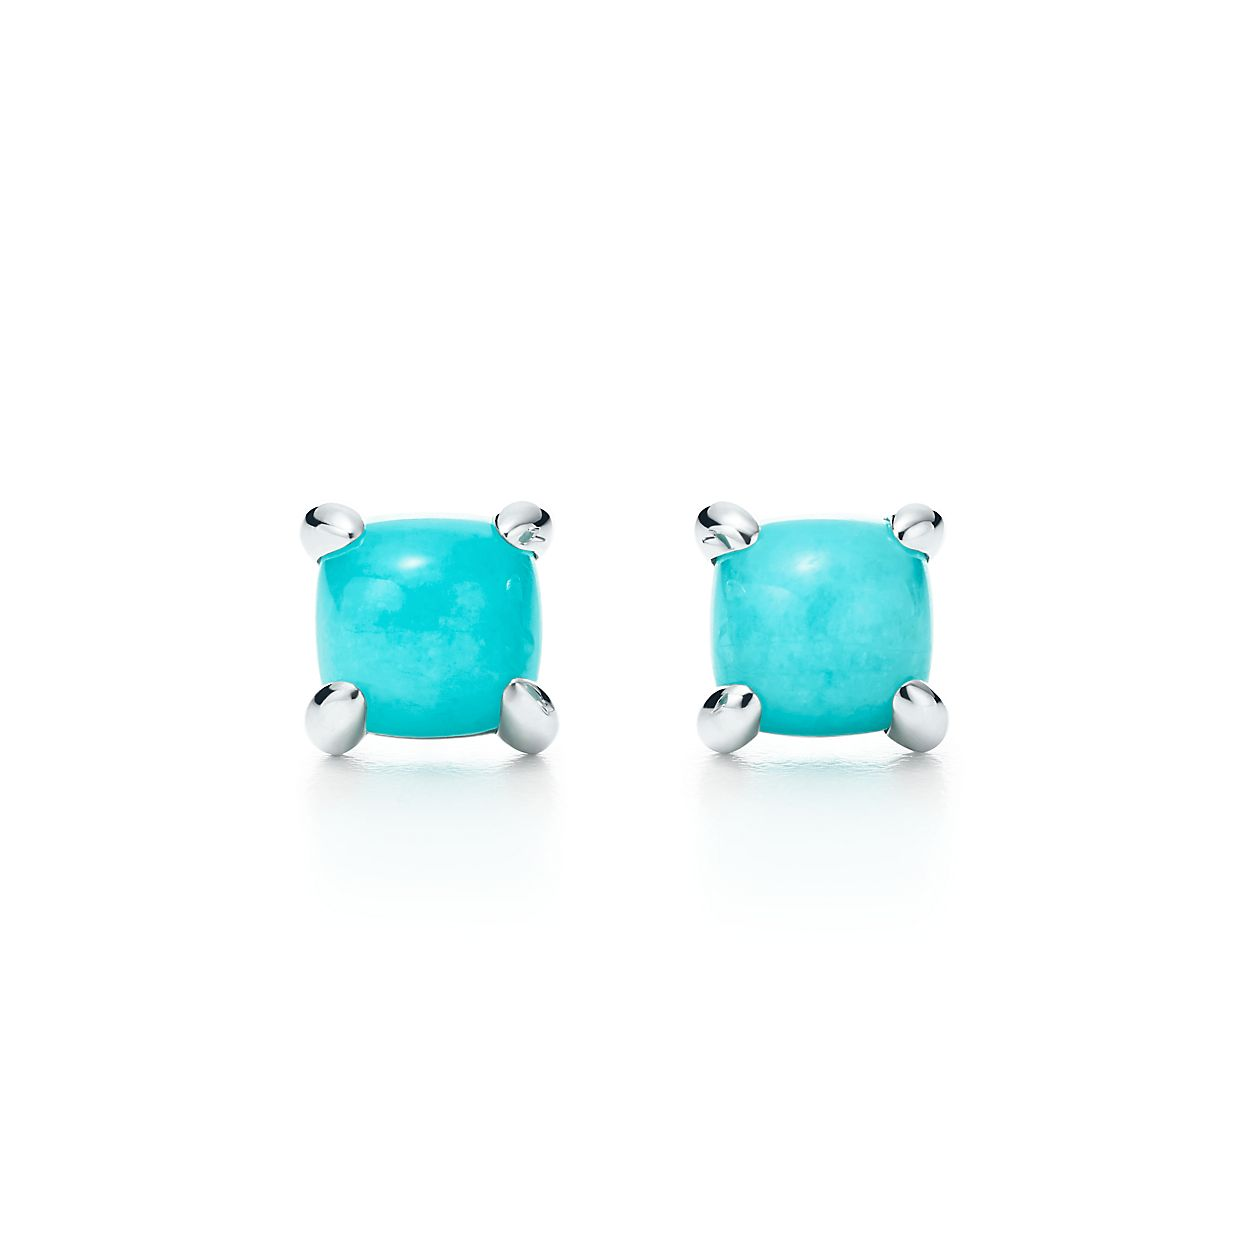 Paloma S Sugar Stacks Earrings